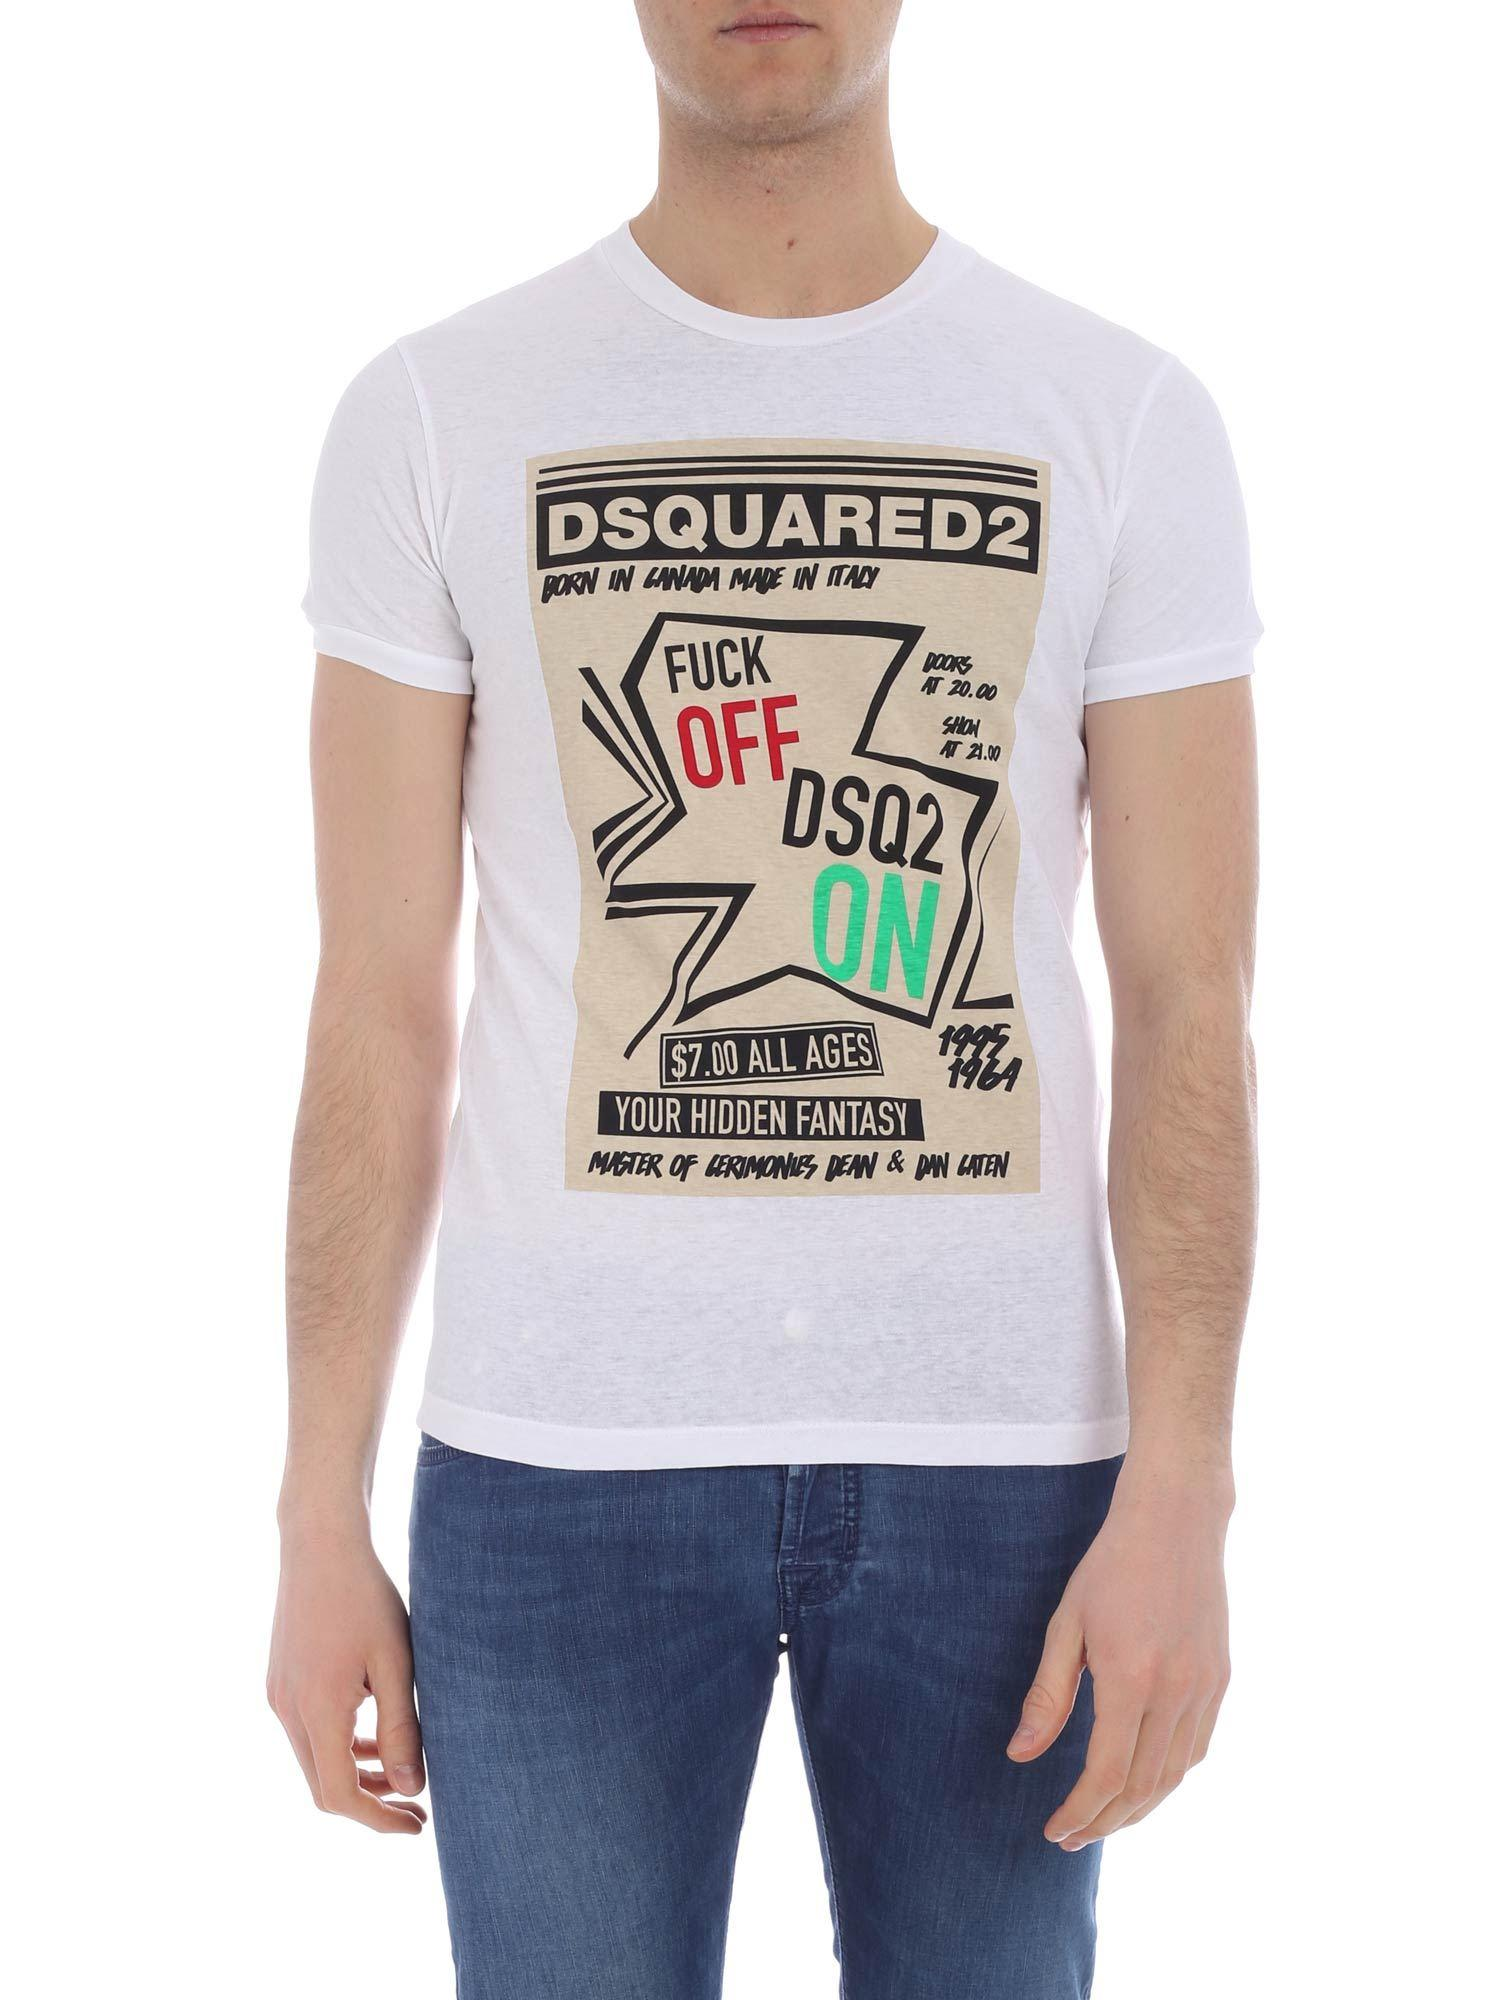 new & pre-owned designer low price hoard as a rare commodity DSquared² Cotton Fuck Off Dsq2 T-shirt in White for Men - Lyst